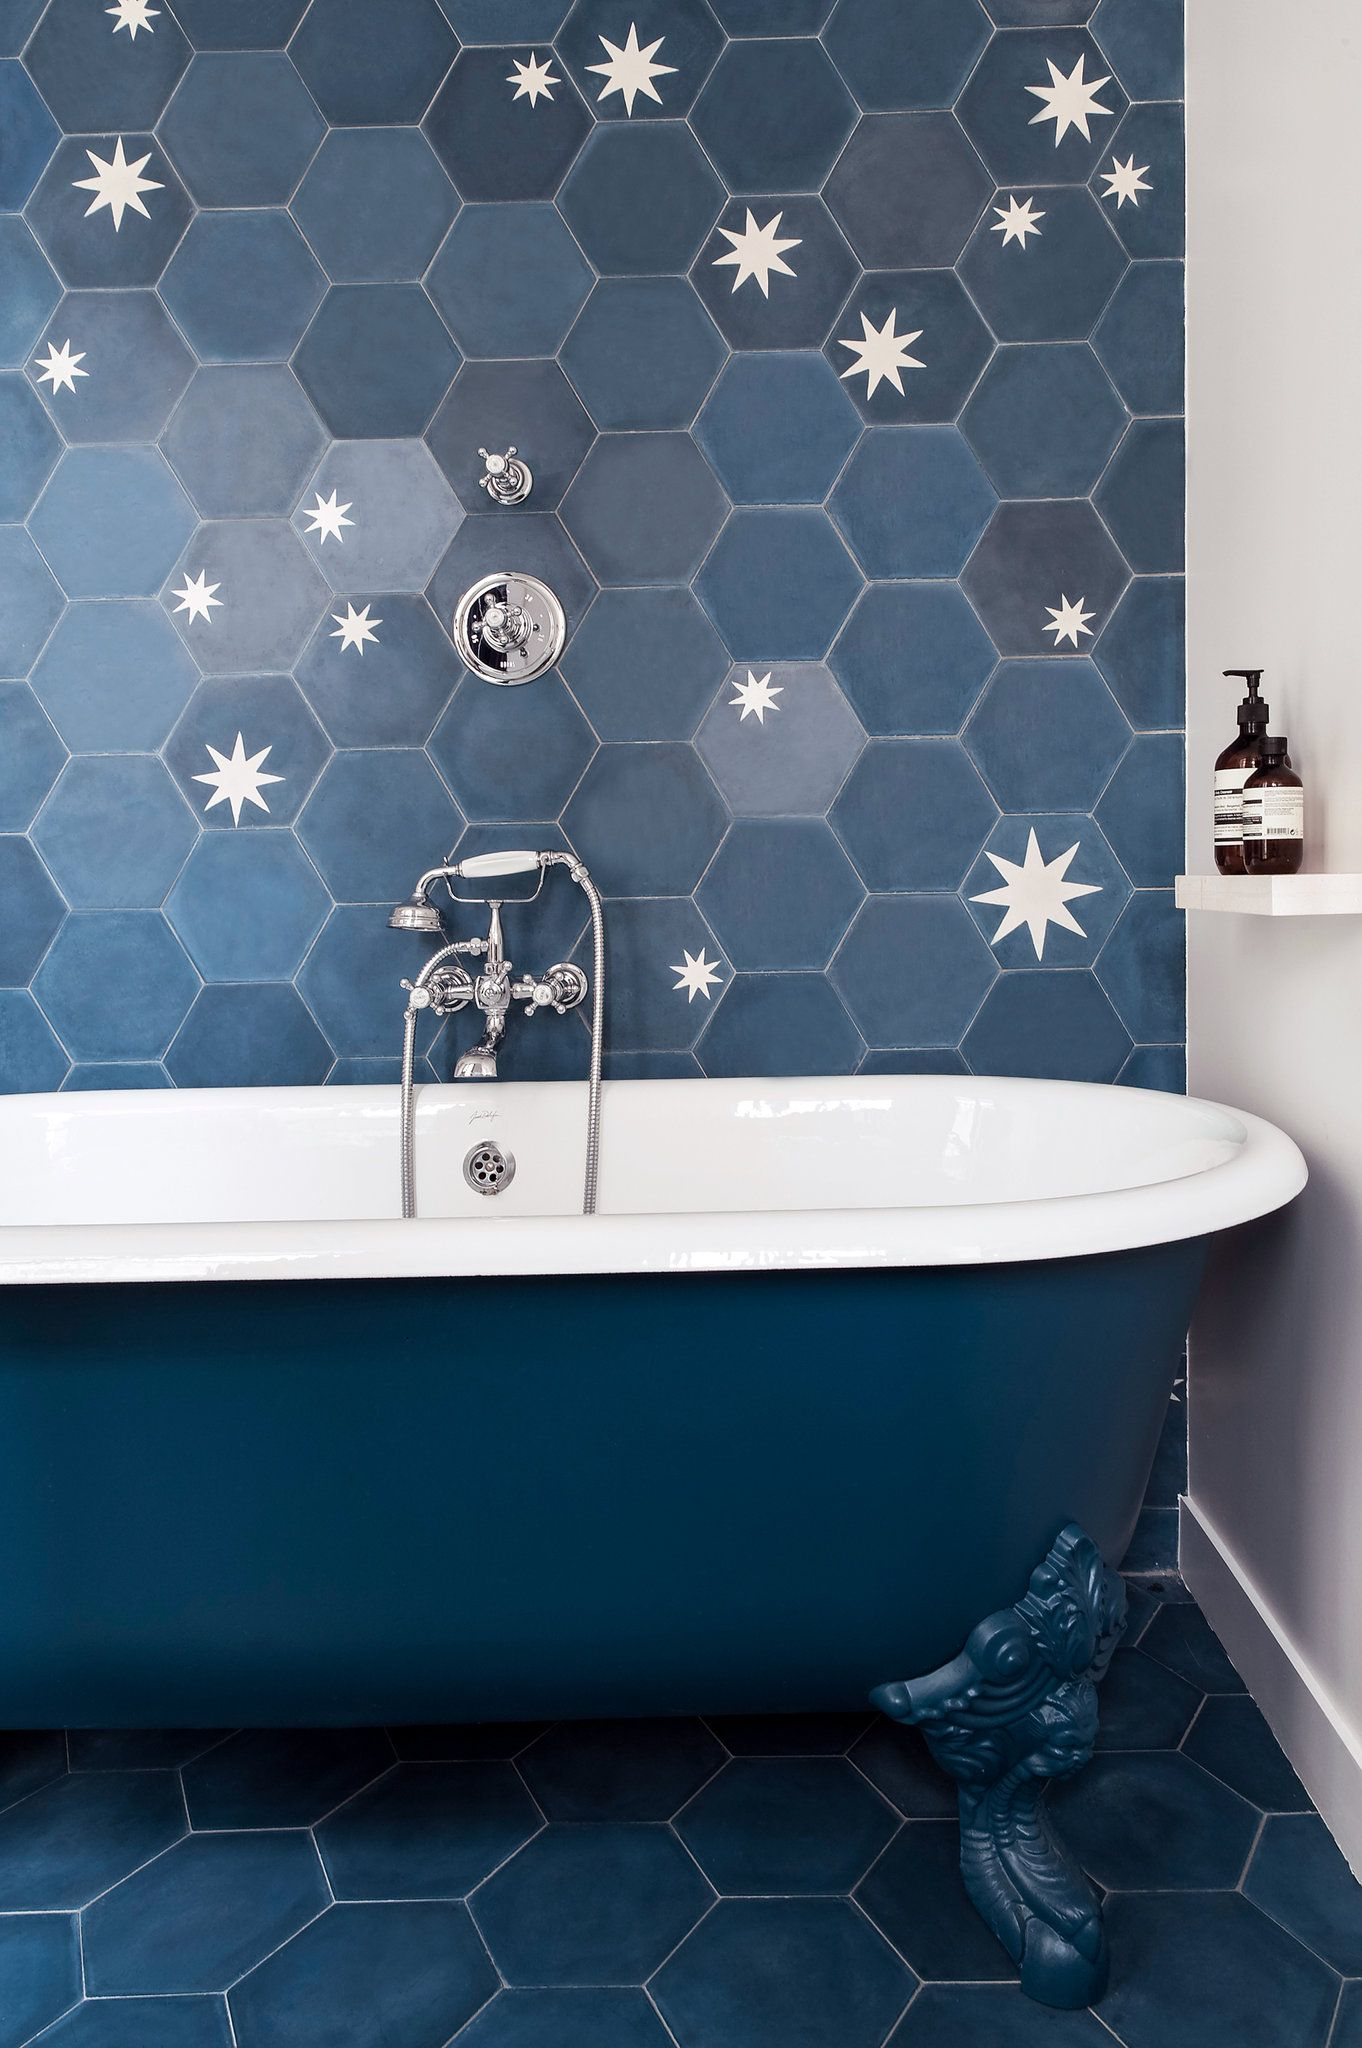 Take a look at our guide to sources in categories including paint wallpaper furniture lighting and more